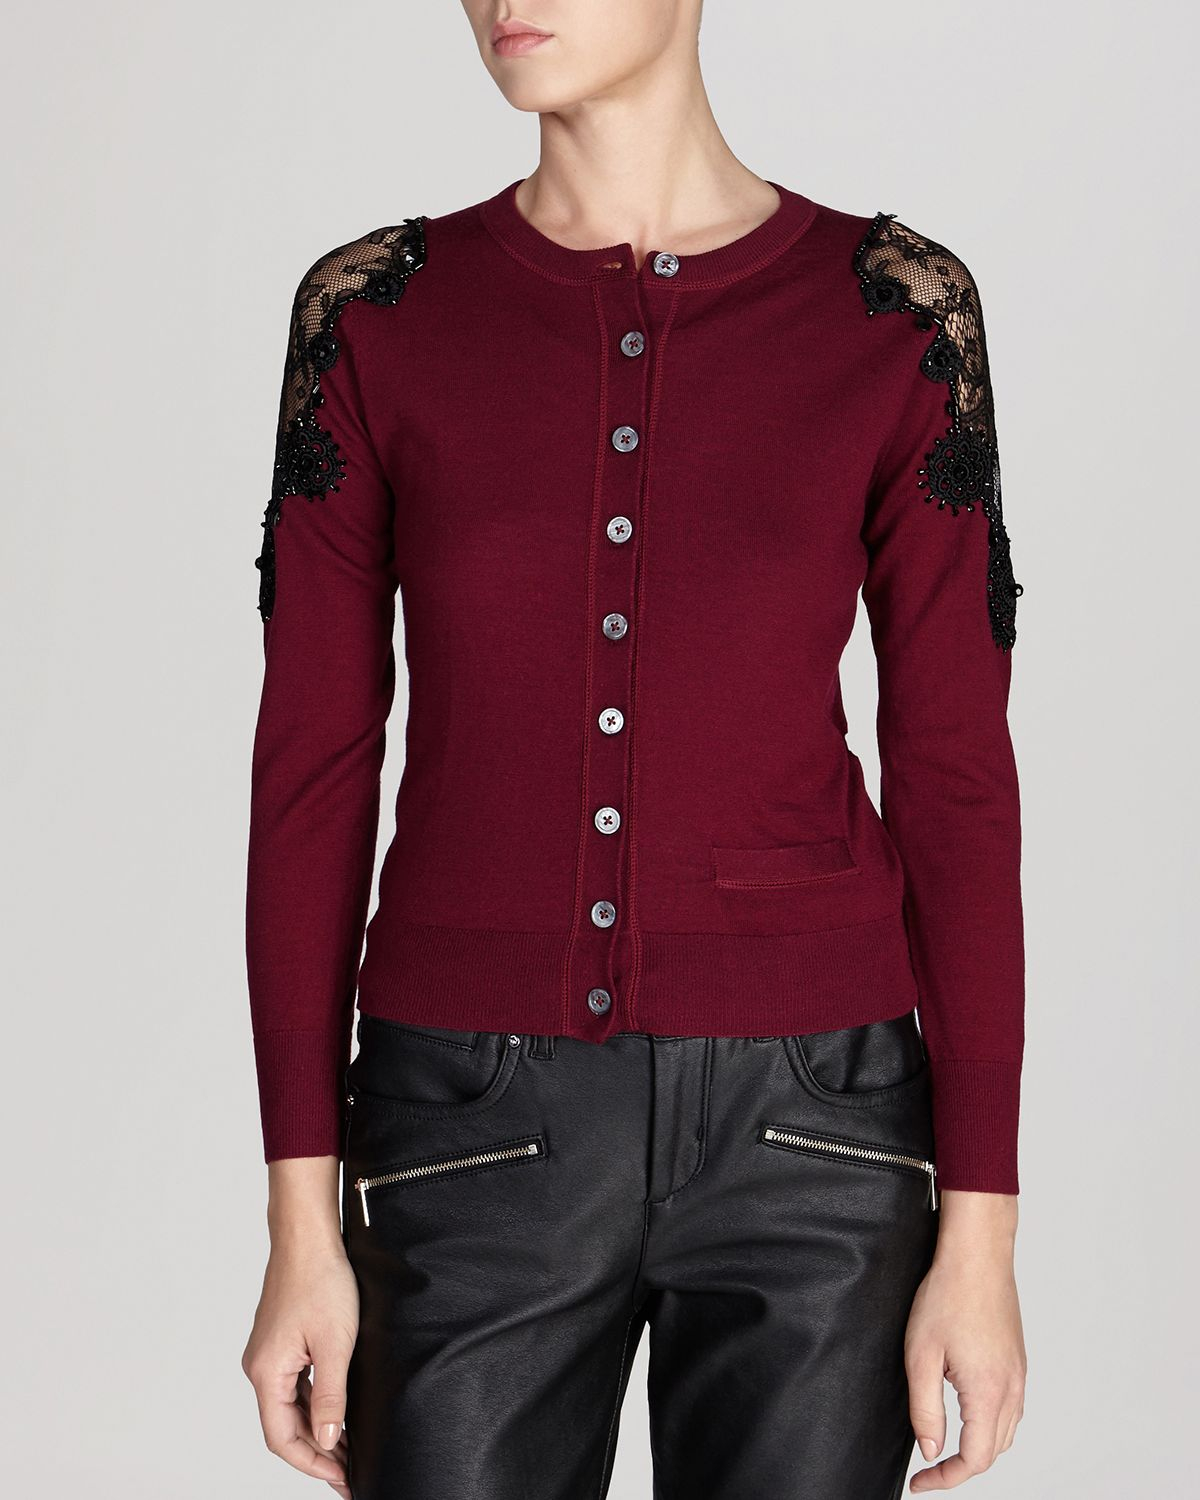 Karen millen Cardigan - Beaded Lace Shoulder Knit in Red | Lyst